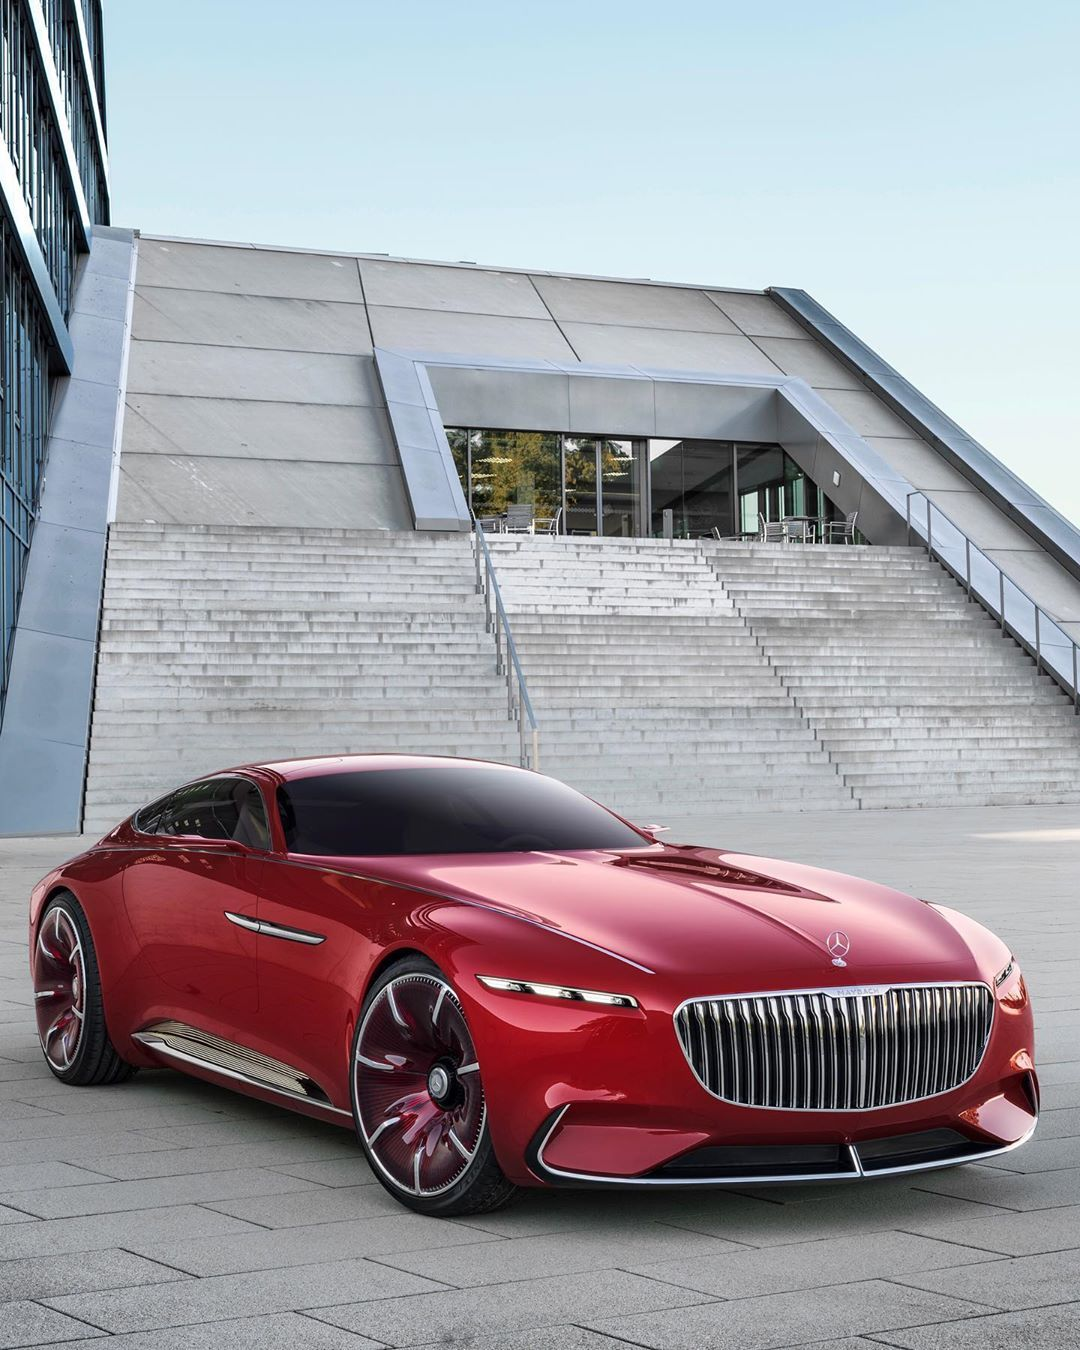 Our Glamorous Coupe The Vision Mercedes Maybach 6 Represents The